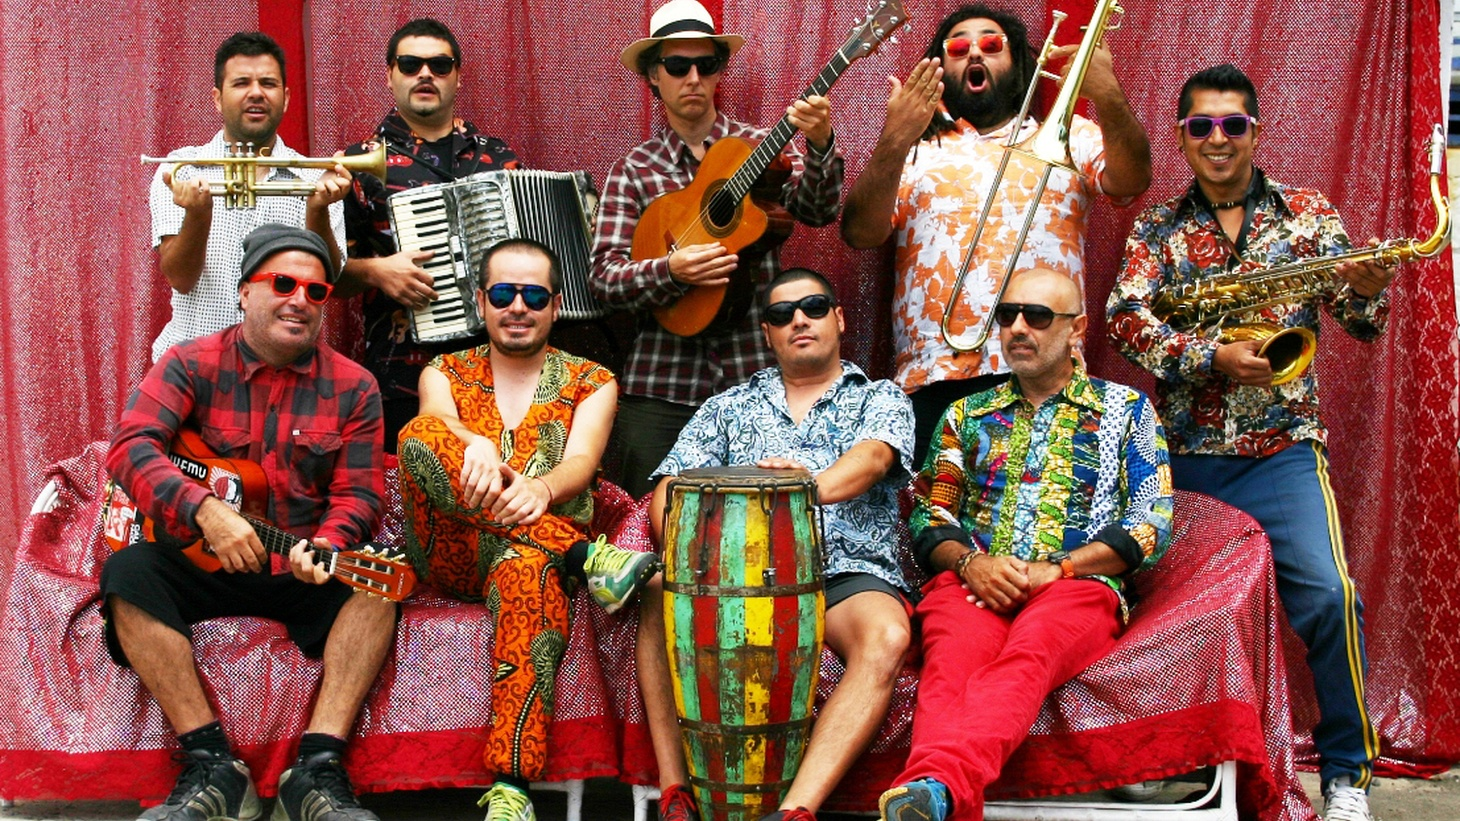 For 15 years, Chilean group Chico Trujillo have been the kings of Pan Latin-American cumbia, with a festive party atmosphere. For their latest album, they are aided by a 30-piece carnival-tested brass band, serving as a perfect appetizer for this year's Latin Alternative Music Conference, taking place in NYC this week!